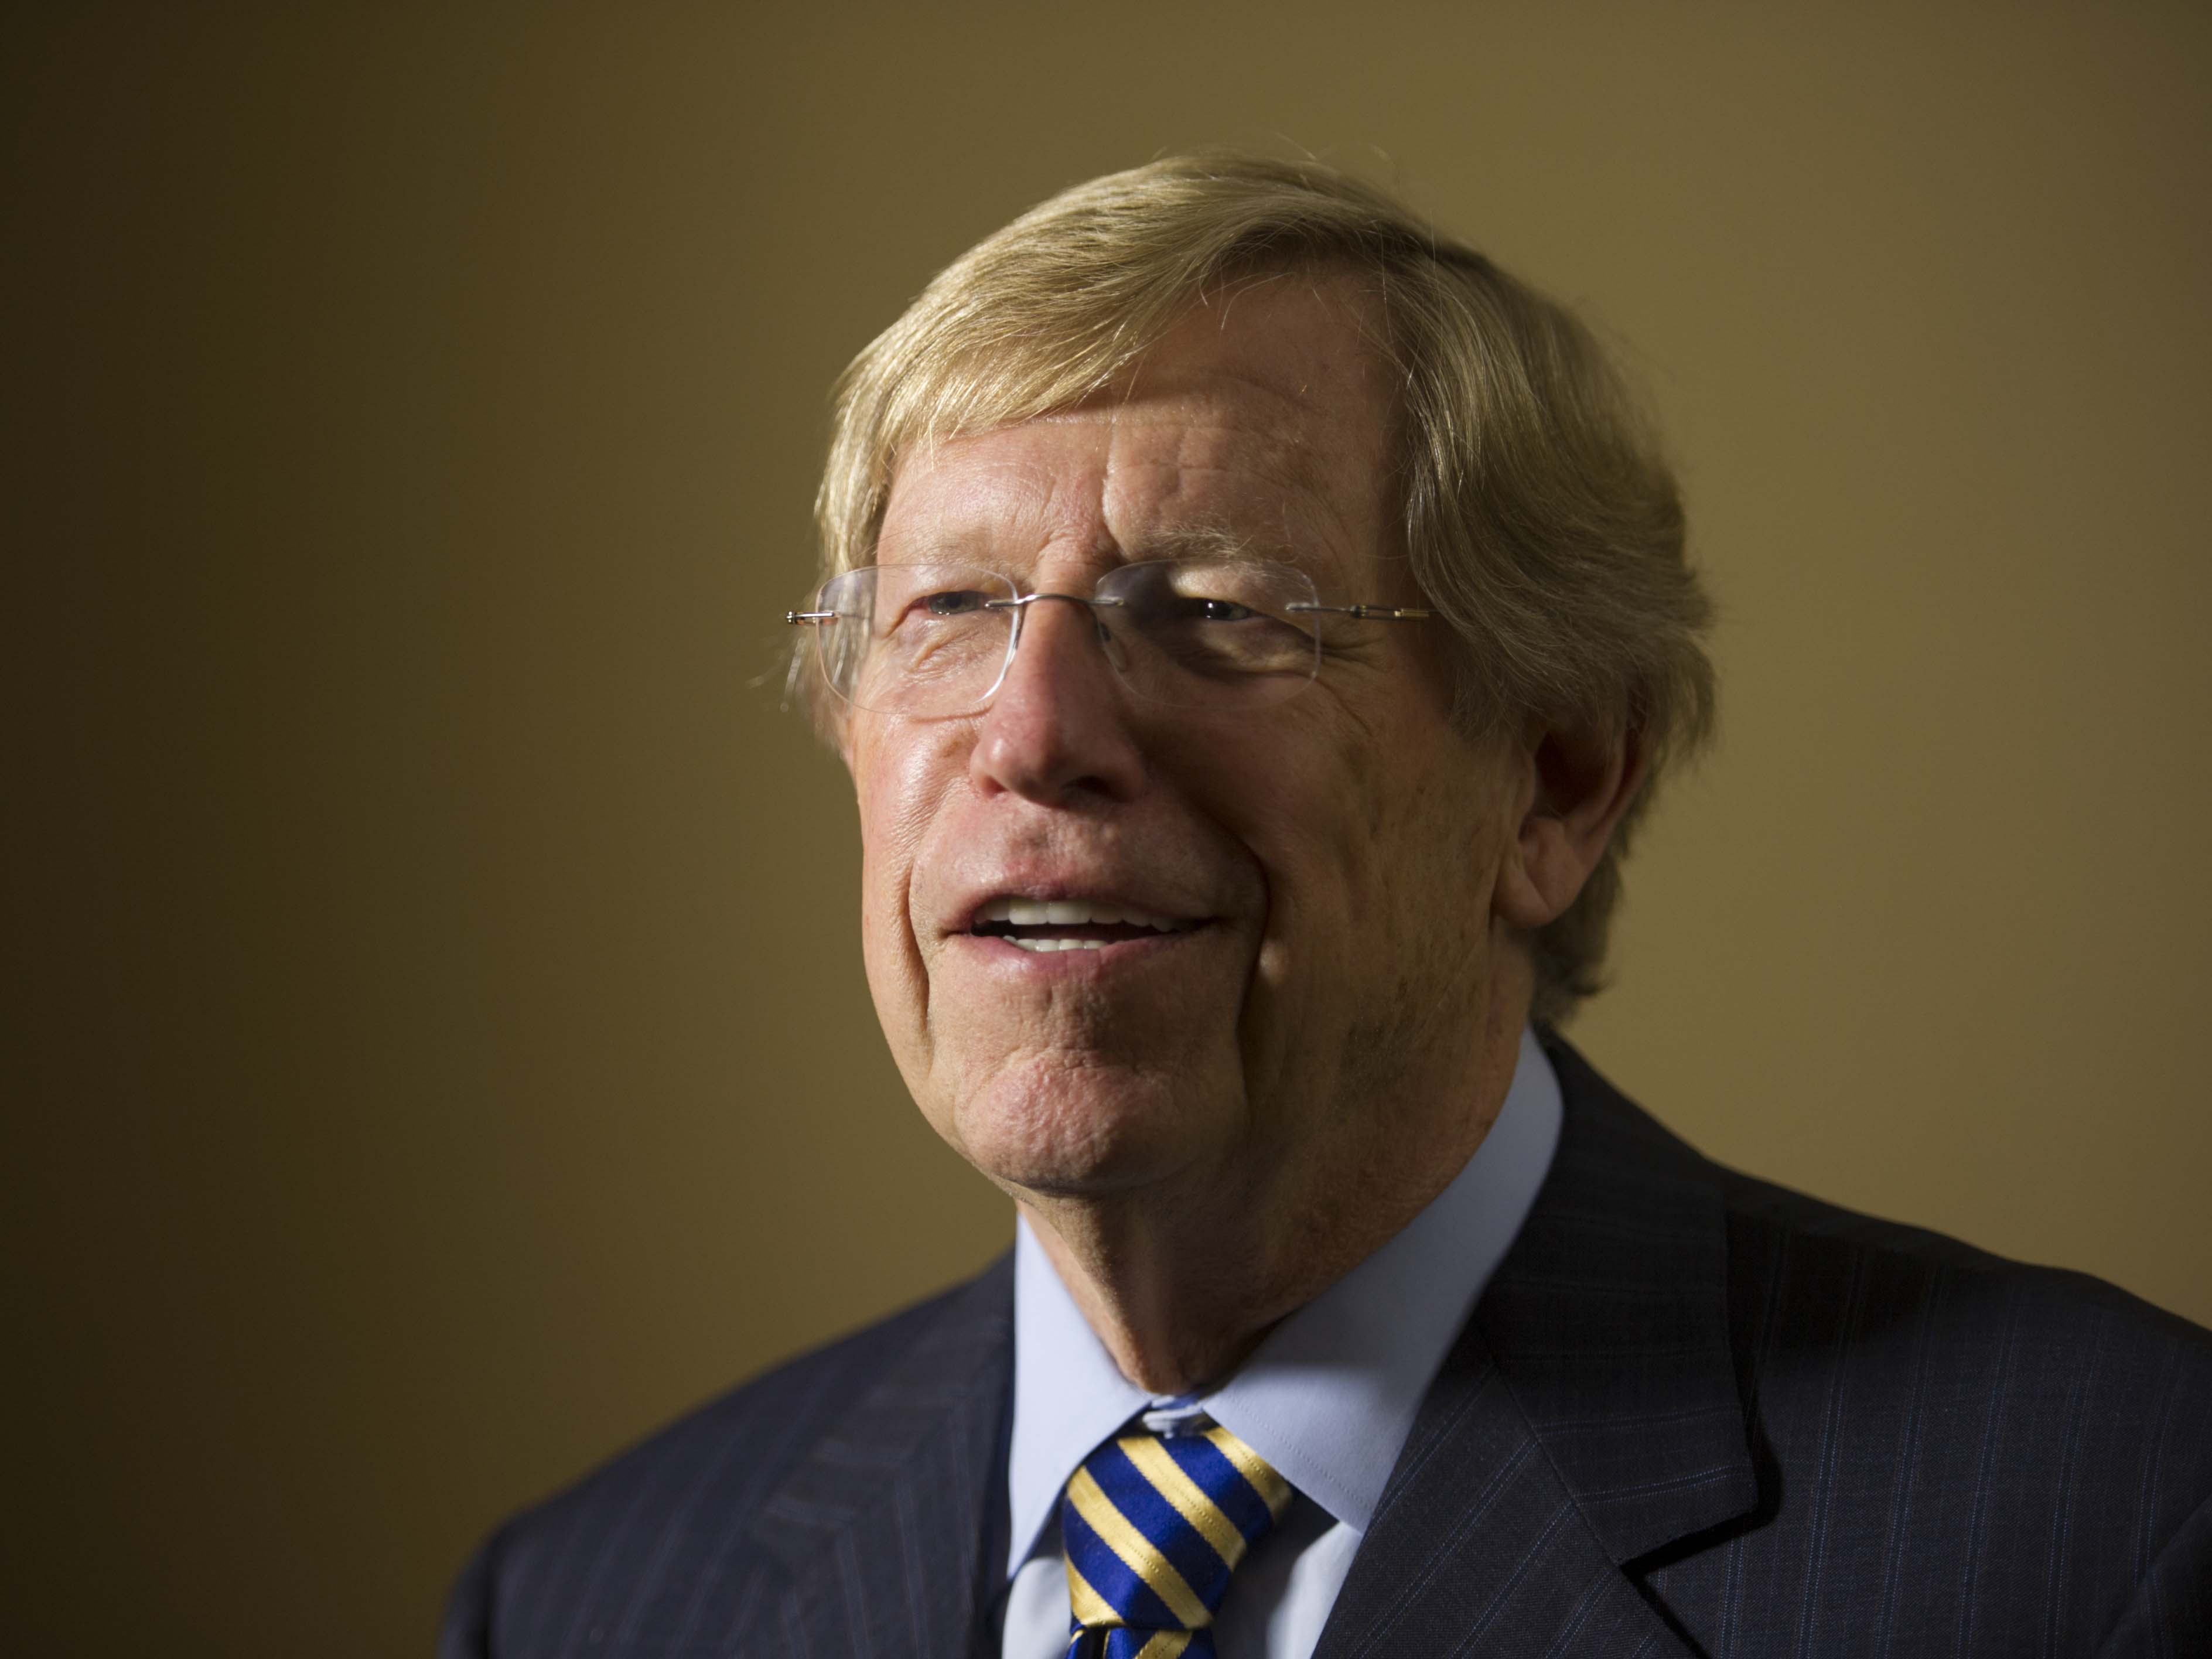 USA TODAY Capital Download with Ted Olson